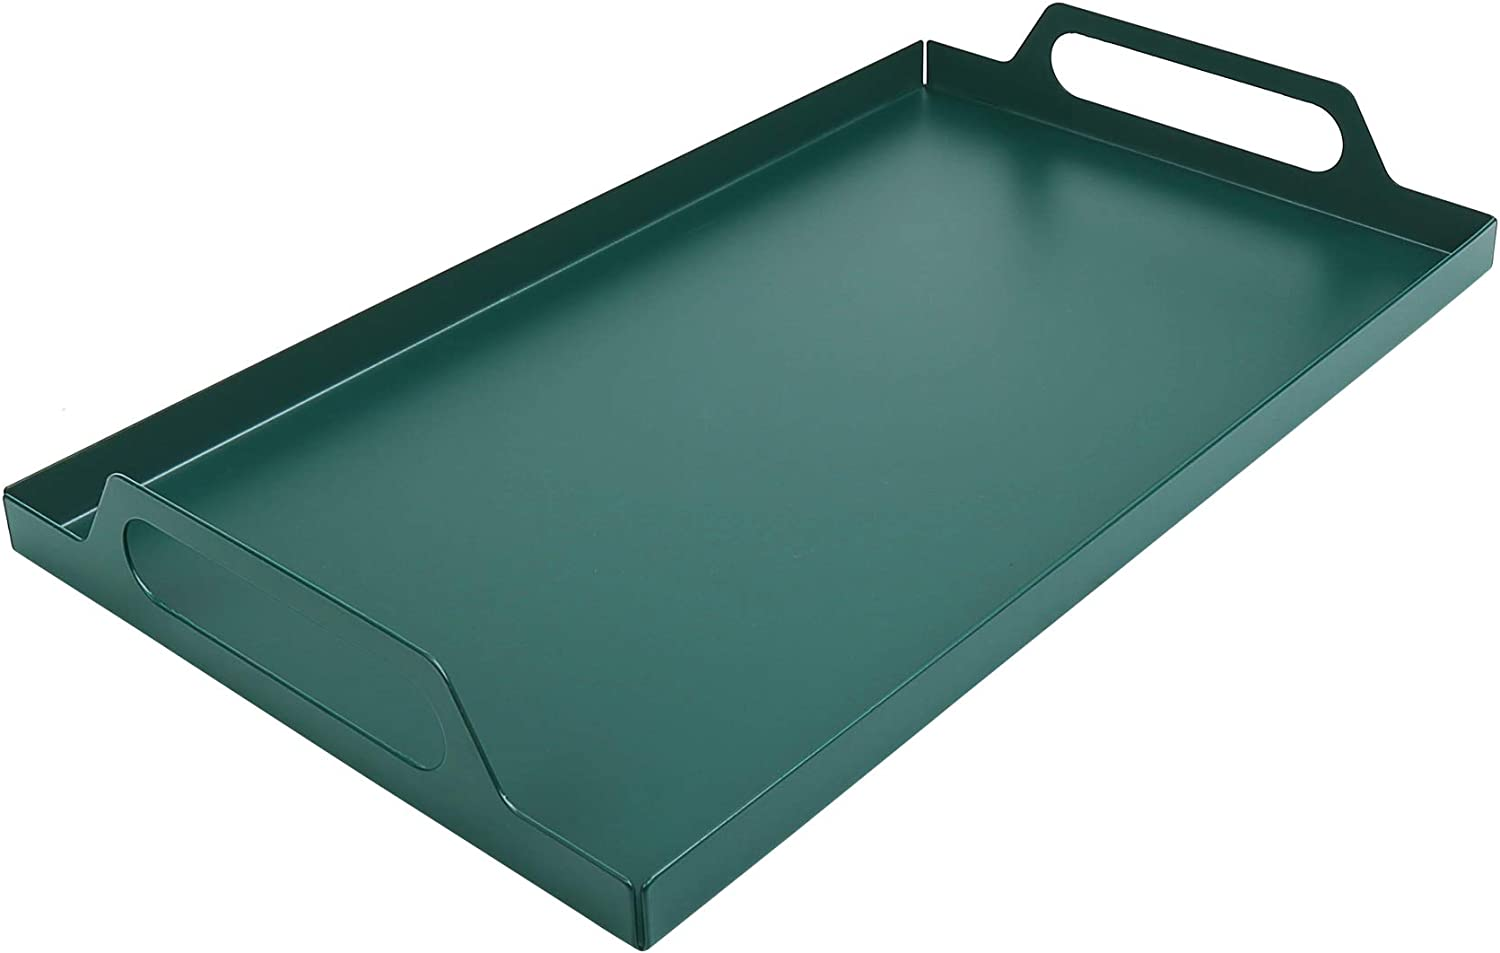 Beyoung Home Serving Tray with Handle Breakfast Food Holder Large ButlerTray Rectangle Metal Display Tray, Deluxe Tray for Coffee Table – an Ottoman Tray with Polished Metal Serving Trays - Green